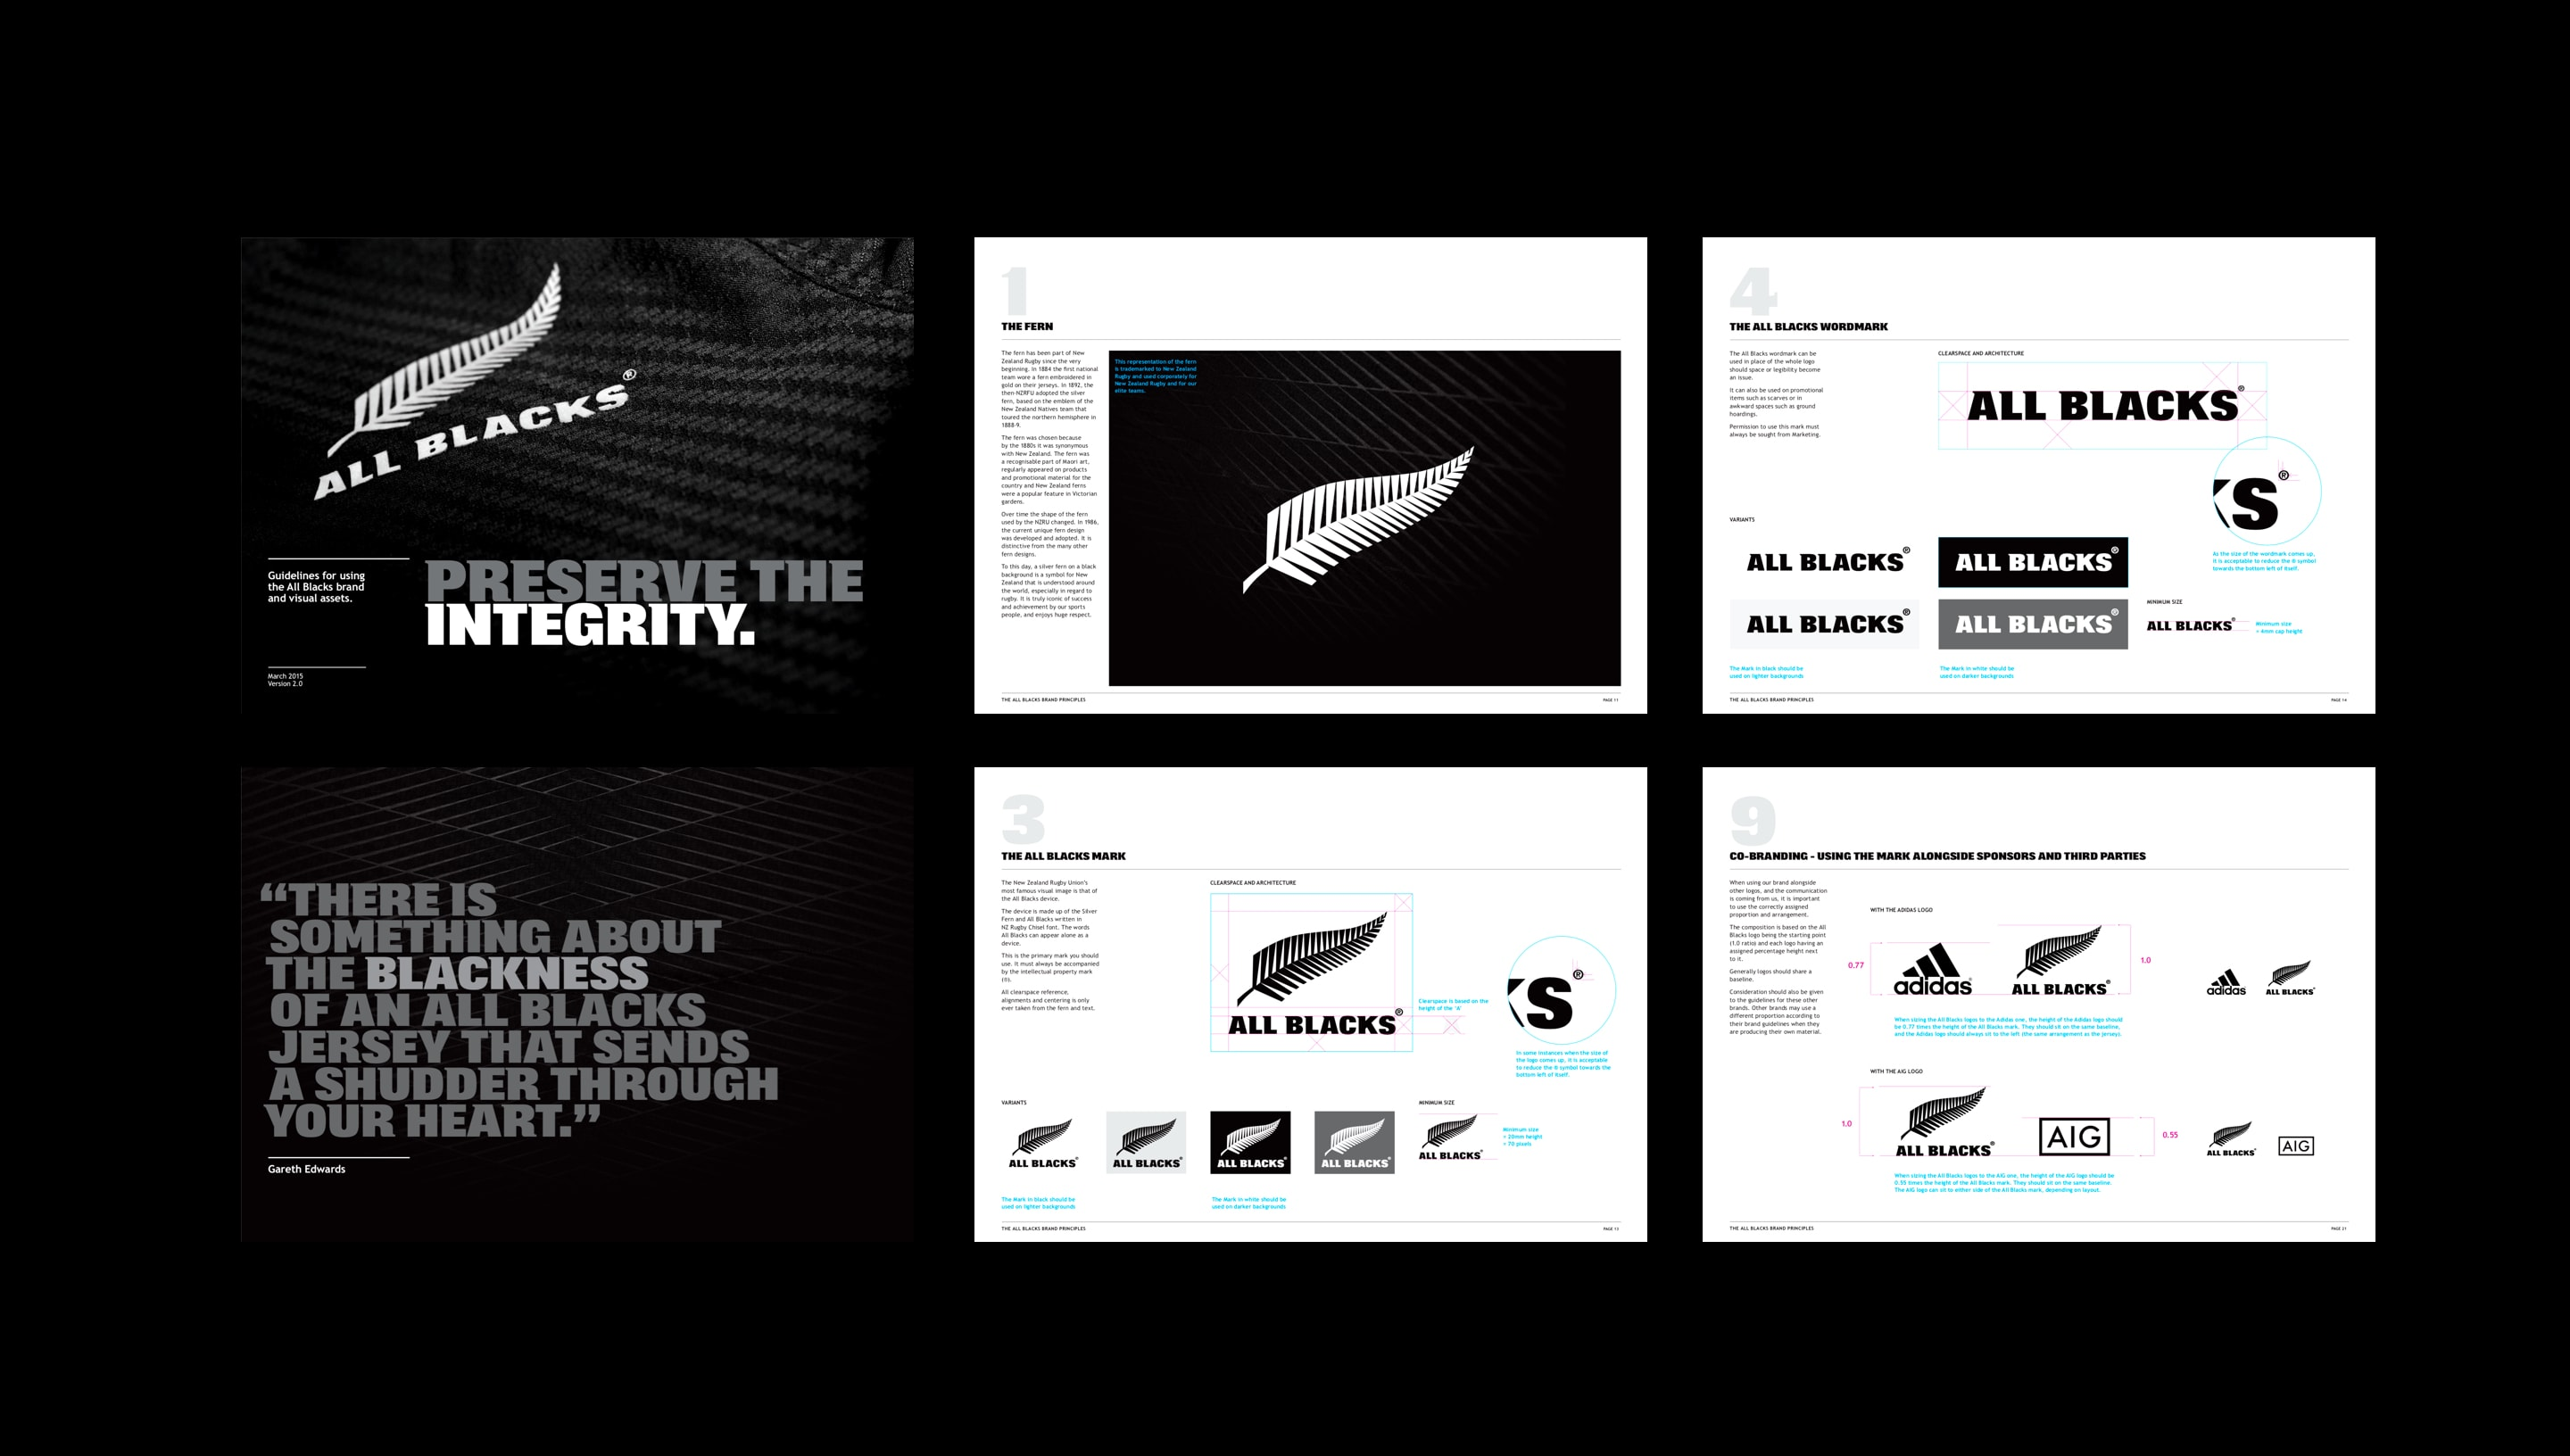 All Blacks Guidelines